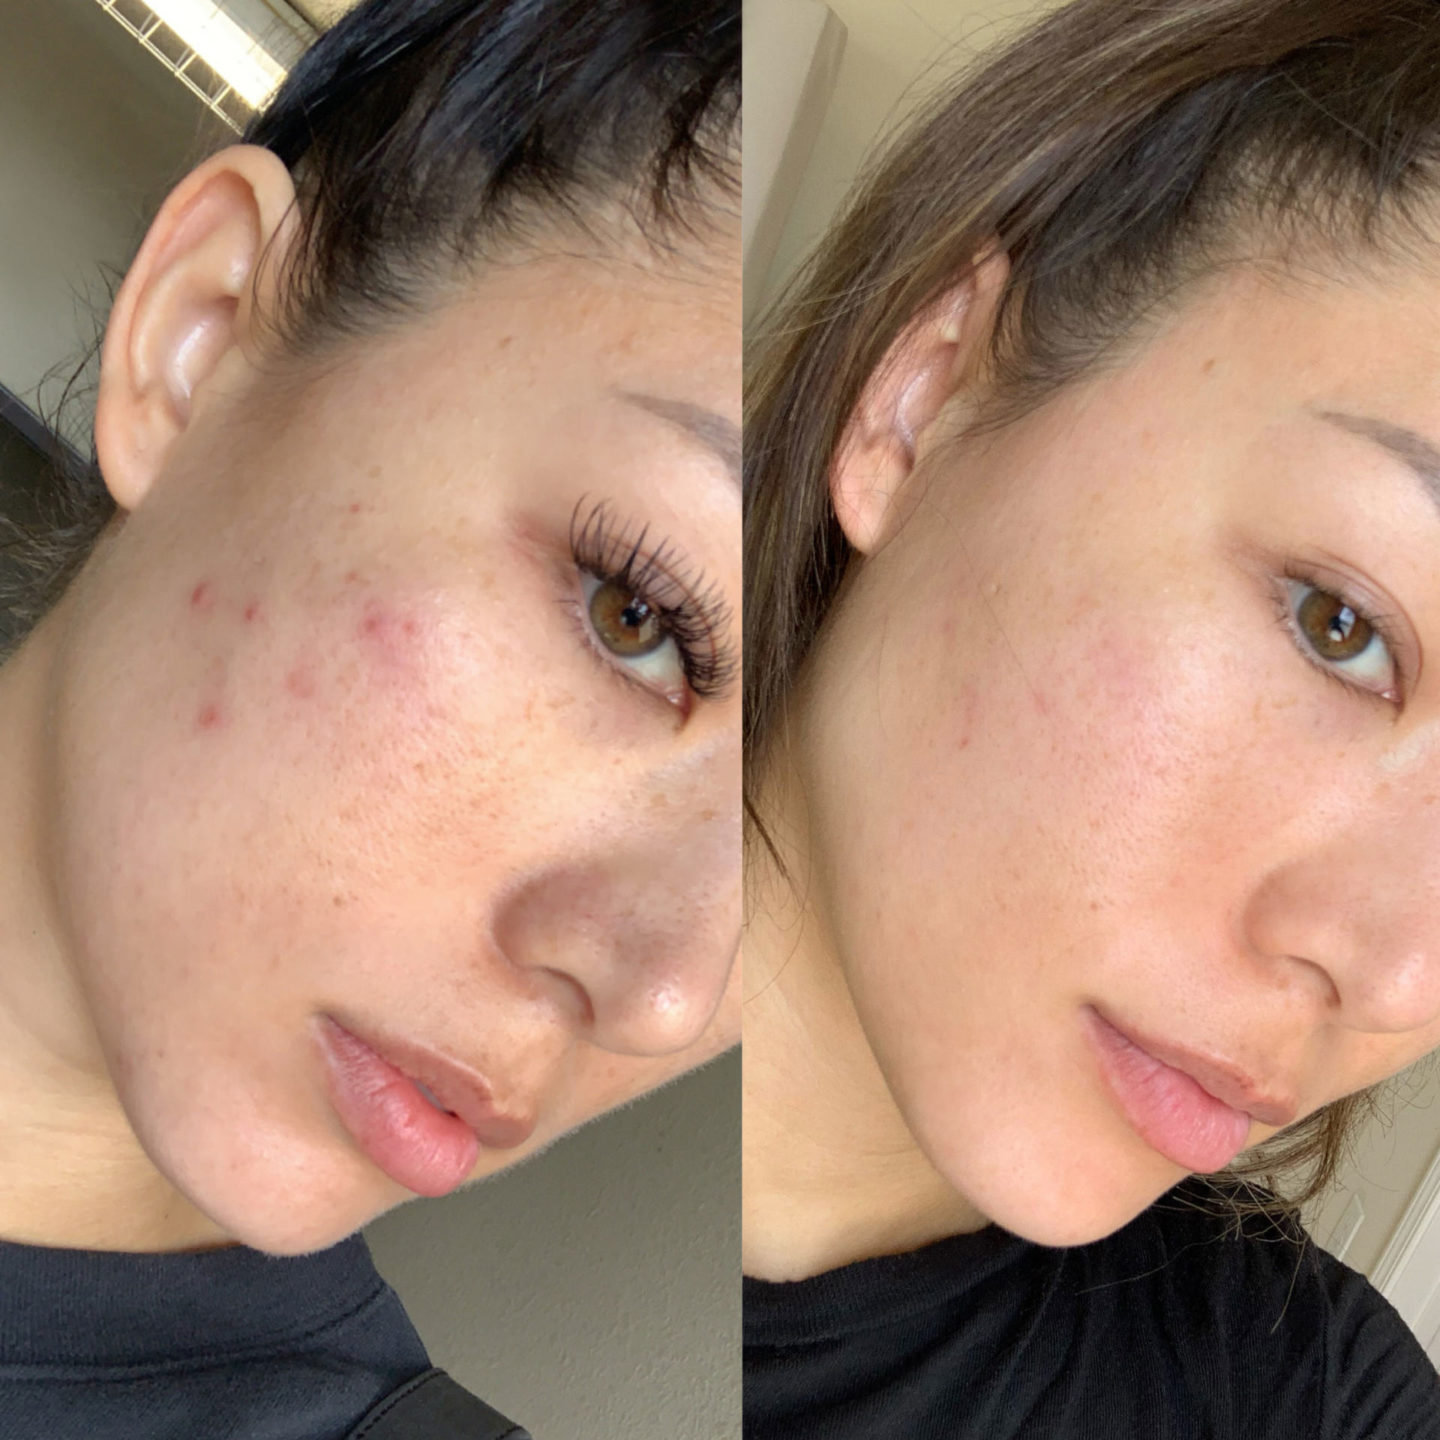 acne, skinceuticals, aging skin, before and after, skin discoloration, aging skin, fine lines, oily skin, beauty, skincare, morning and night routine